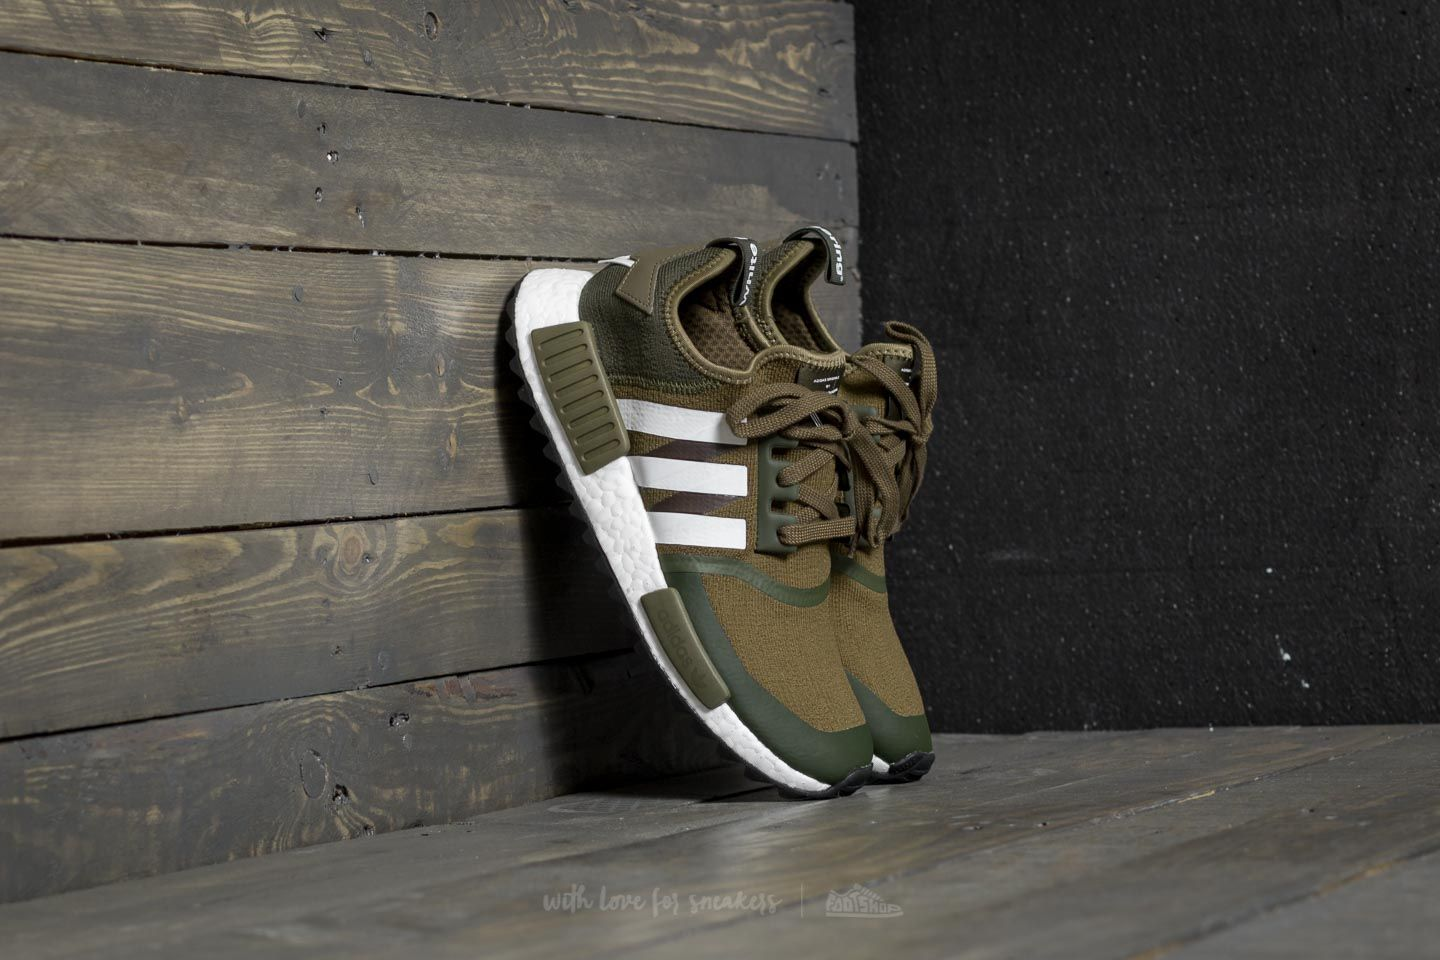 adidas x White Mountaineering NMD Trail Primeknit Trace Olive/ Ftw White